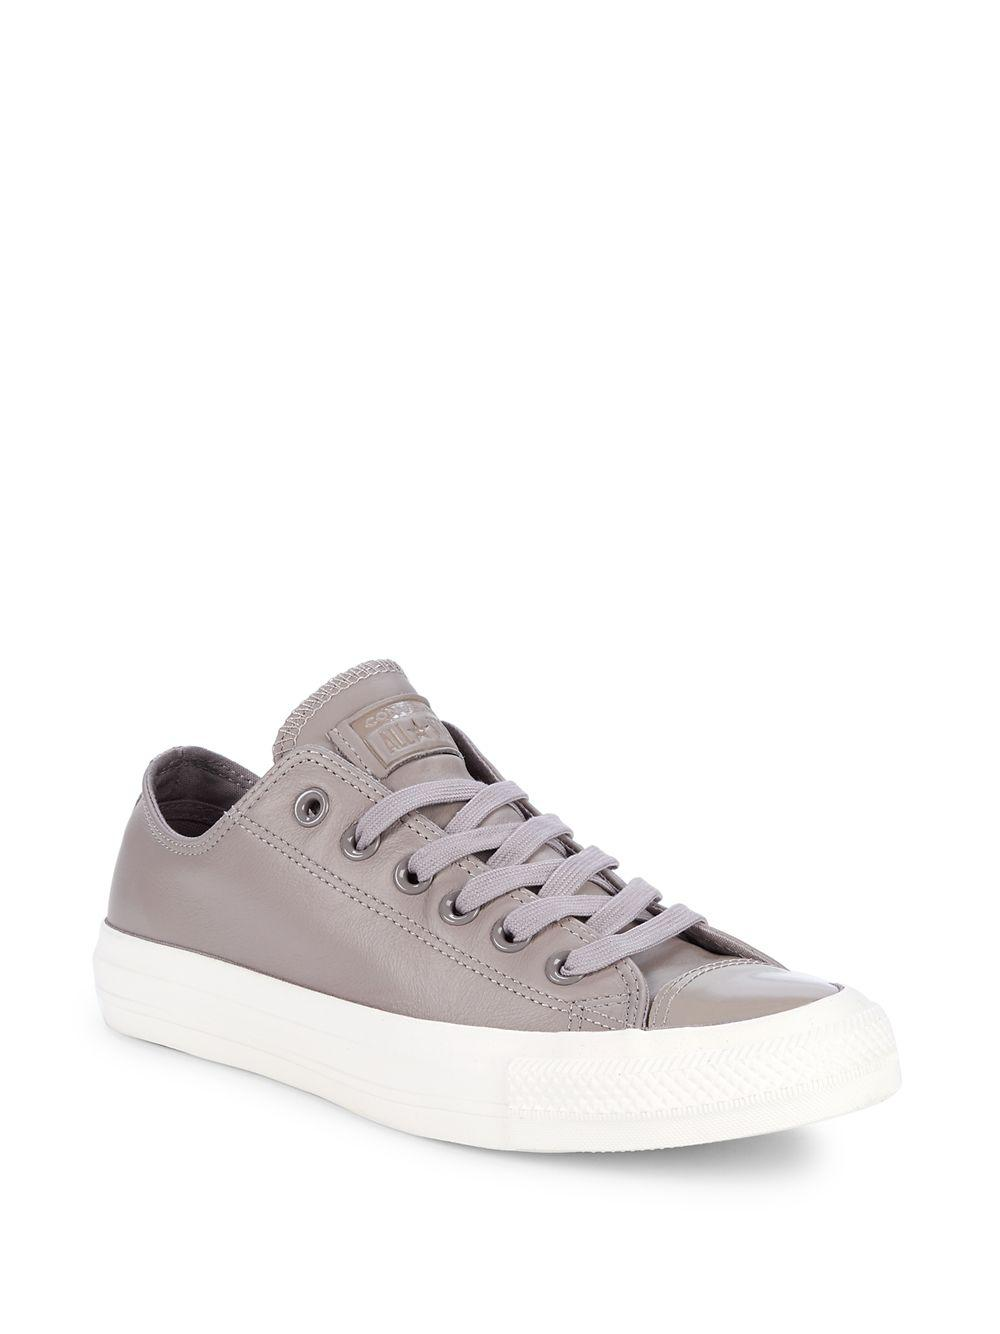 465588092d87d4 Converse All-star Leather Low-top Sneakers in Gray - Lyst